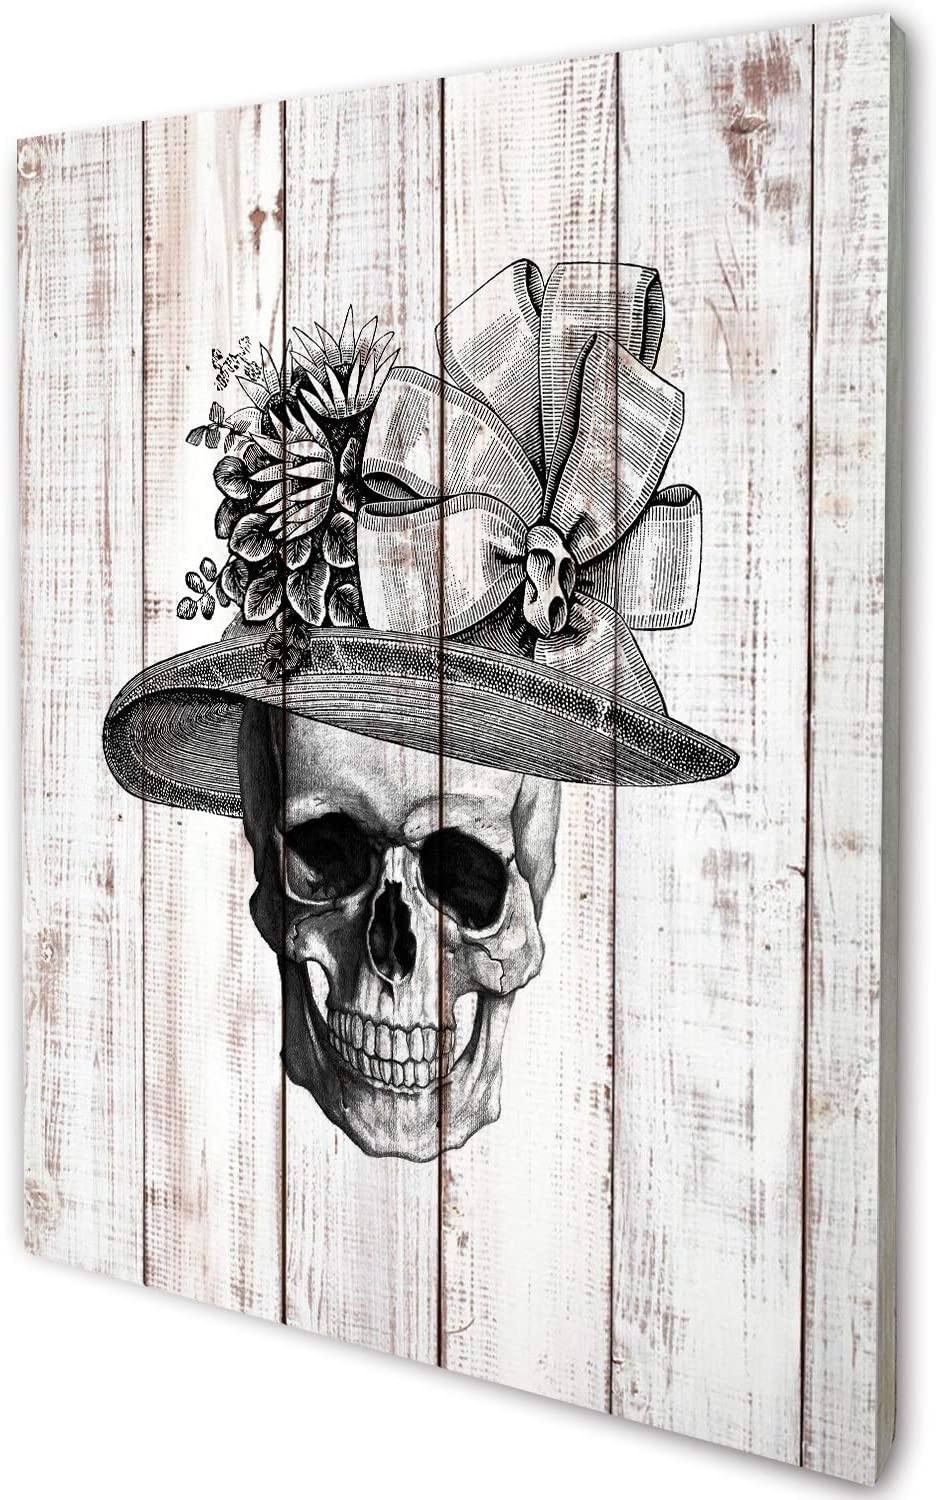 akeke Anatomy Skull Lady Vintage Rustic Farmhouse Wood Wall Art Decor, Unique Steampunk Anatomy Home Studio Decor for Dr Office, Gift for Doctor, Physician, Nurse,Friend, Student, 8